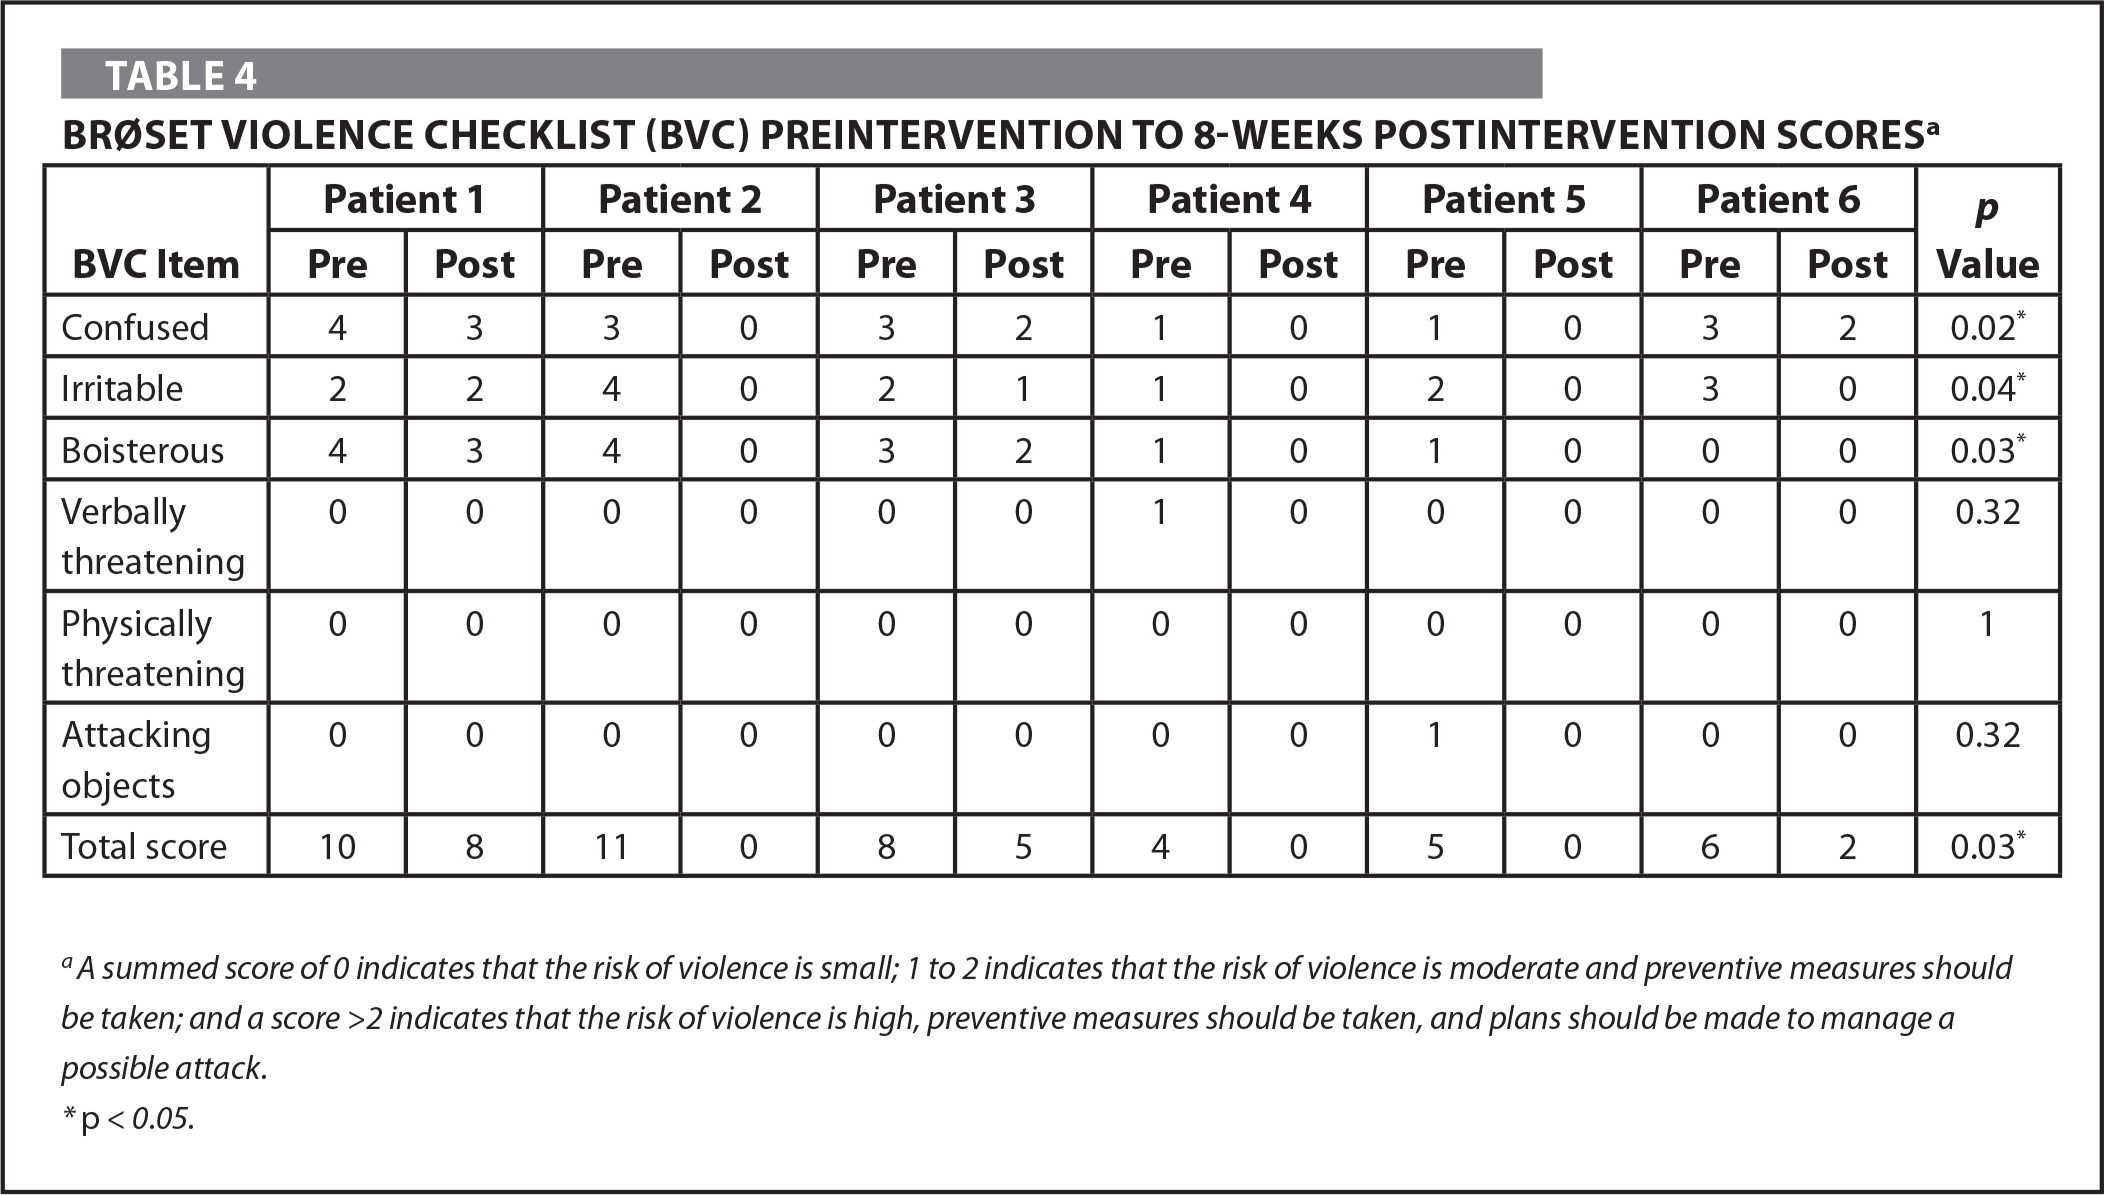 Brøset Violence Checklist (BVC) Preintervention to 8-Weeks Postintervention Scoresa